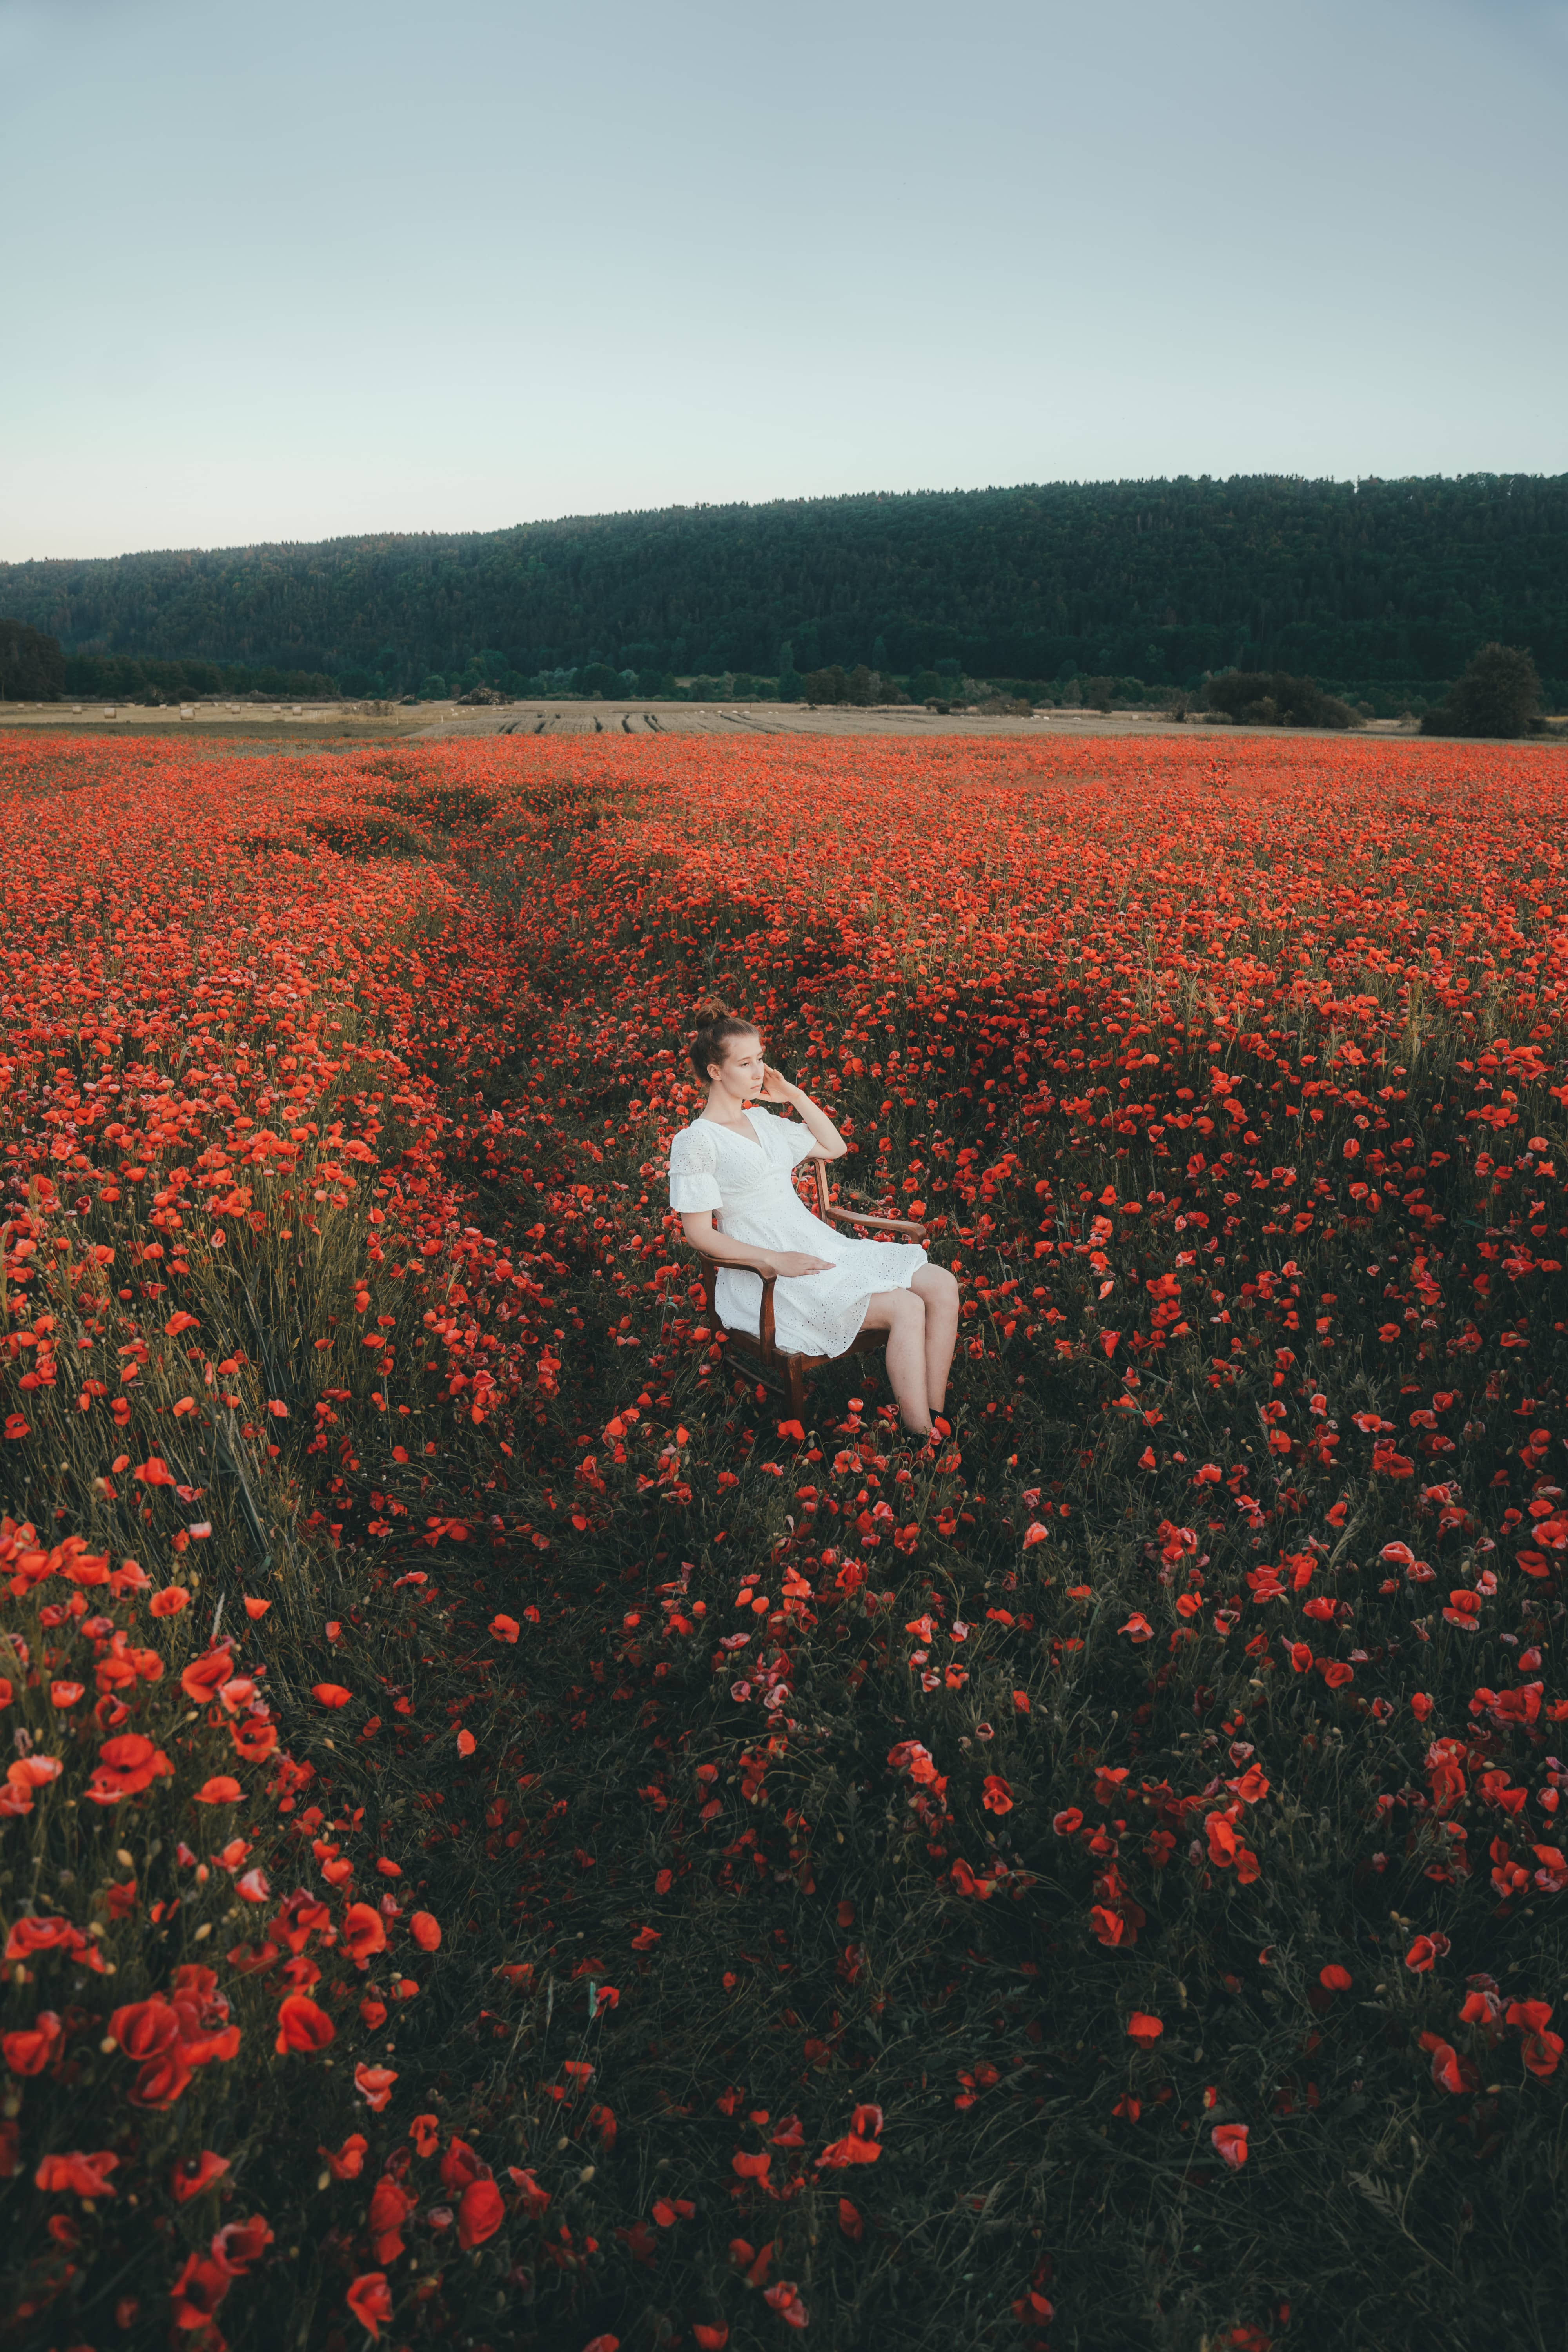 Girl in fashionable dress sitting on a chair in the middle of a poppy field surrounded by flowers